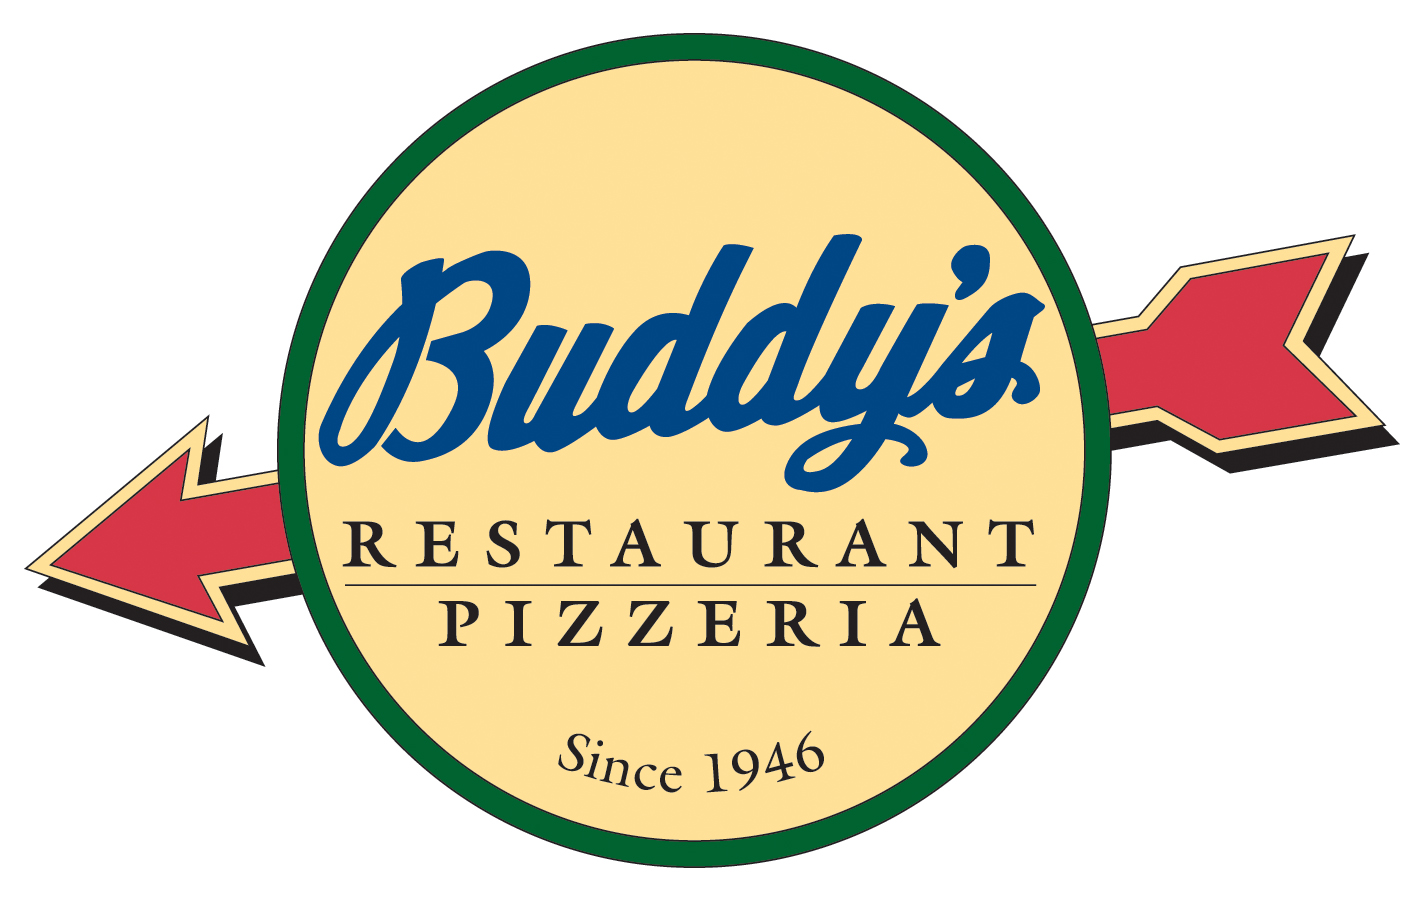 Free Is My Life Buddy S Pizza Offers Customer